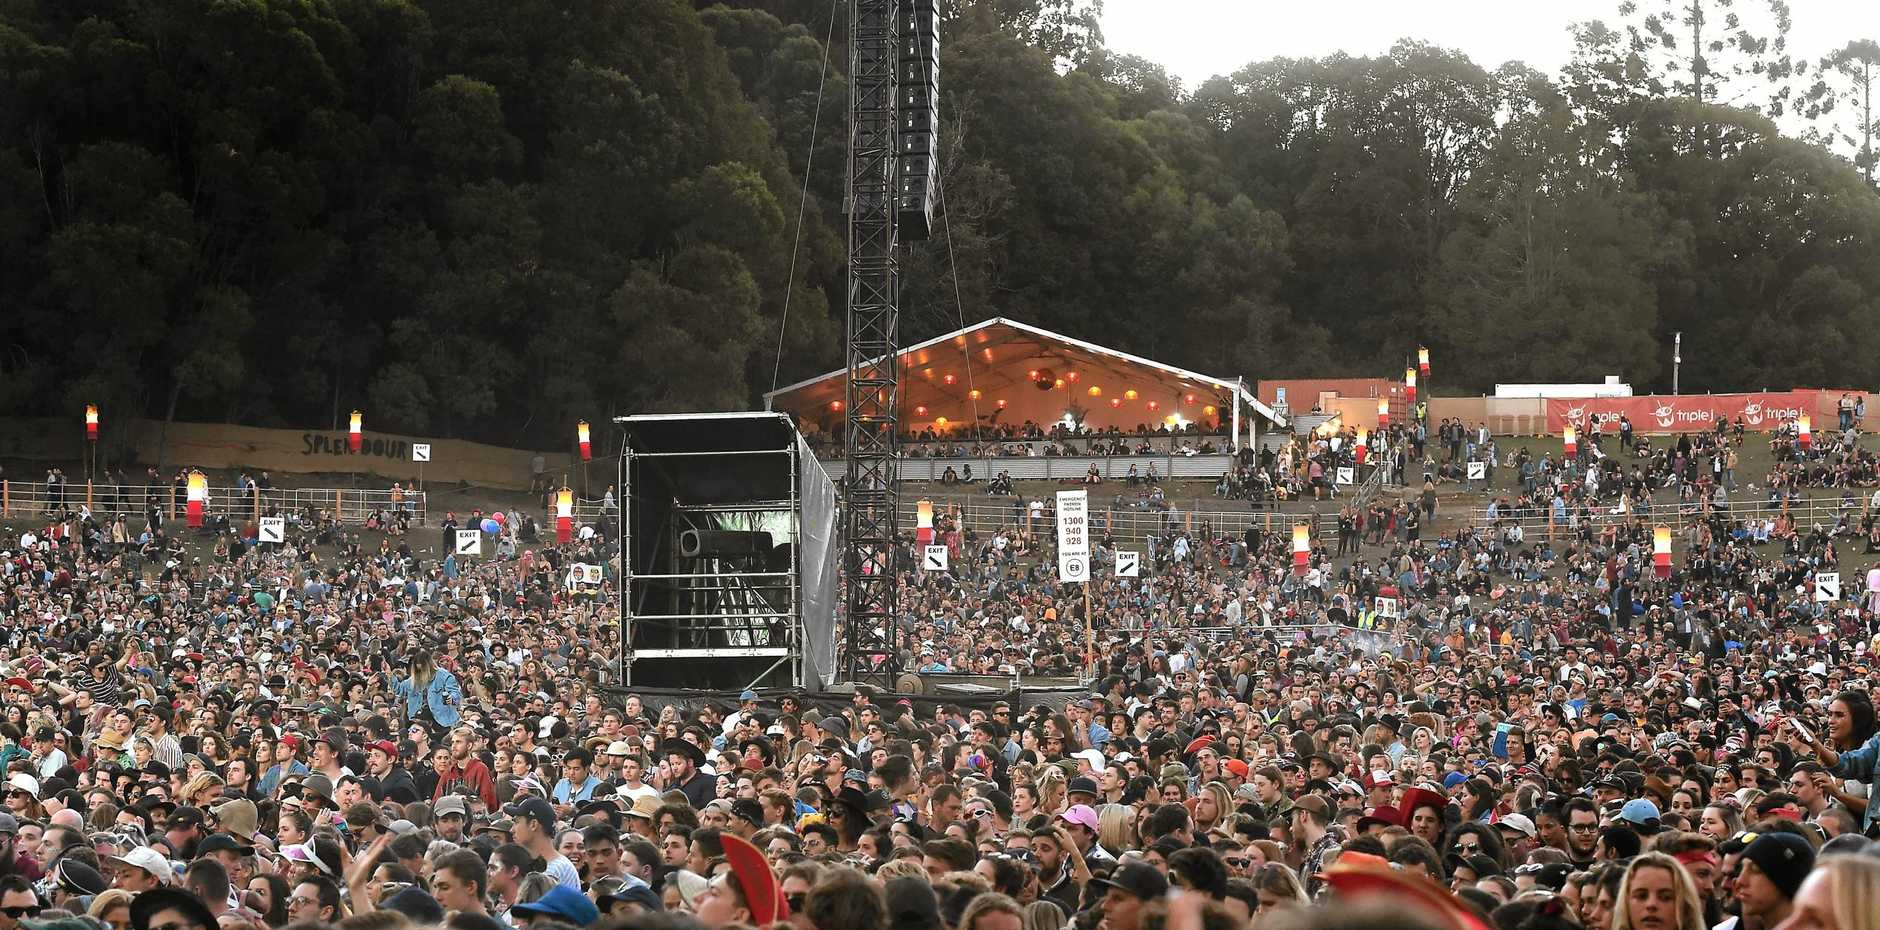 TESTING: The testing of drugs at the Groovin the Moo festival revealed some interesting results.